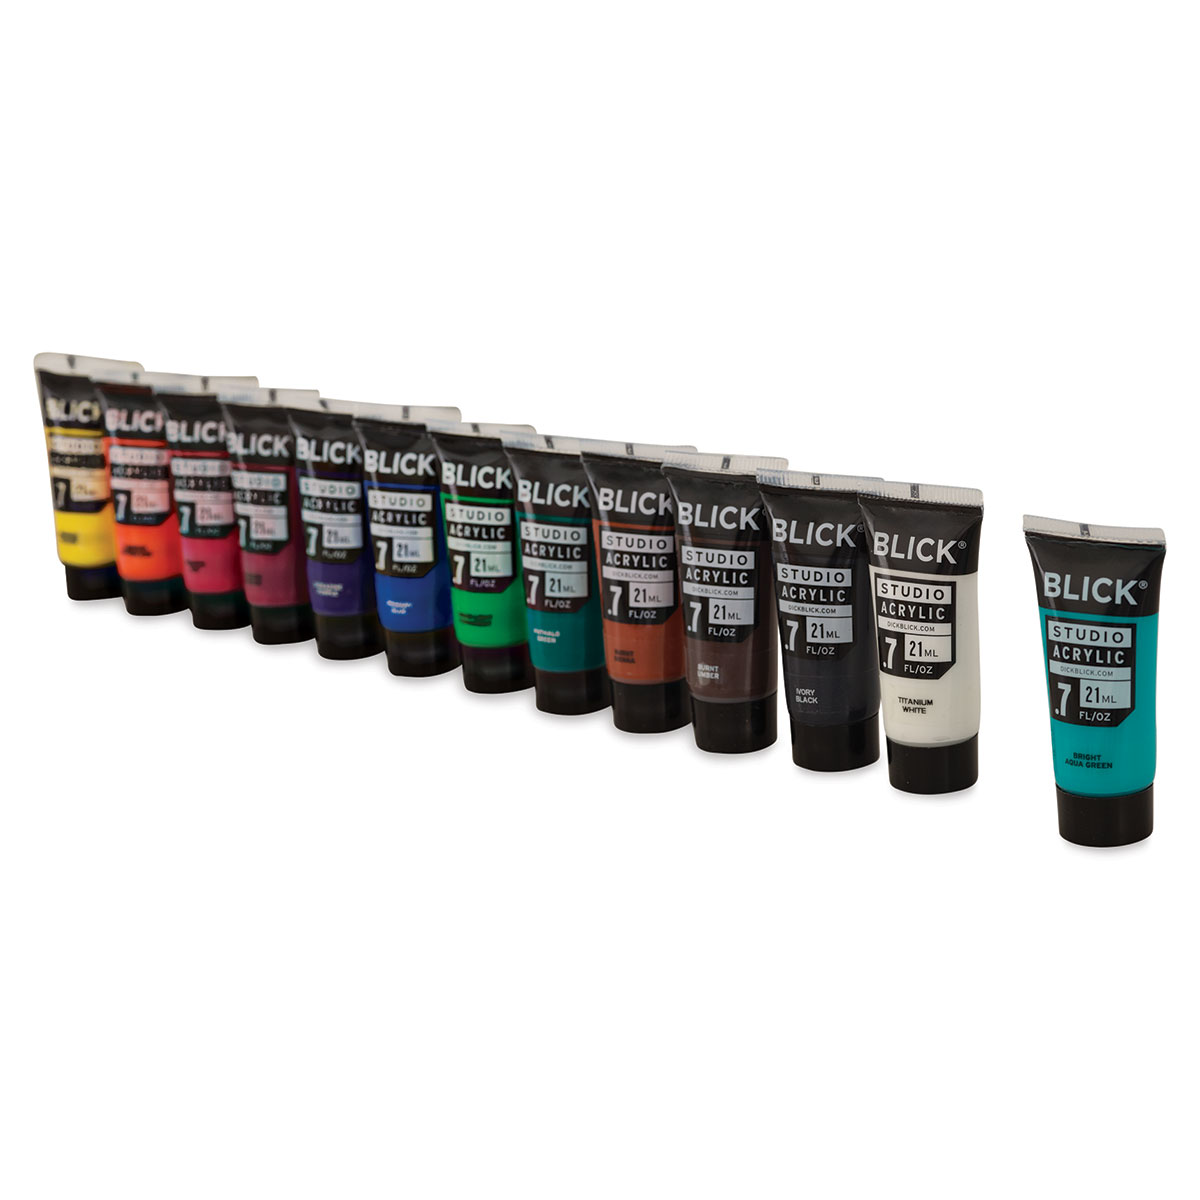 Blick Studio Acrylics - Set of 12 + Bonus Tube